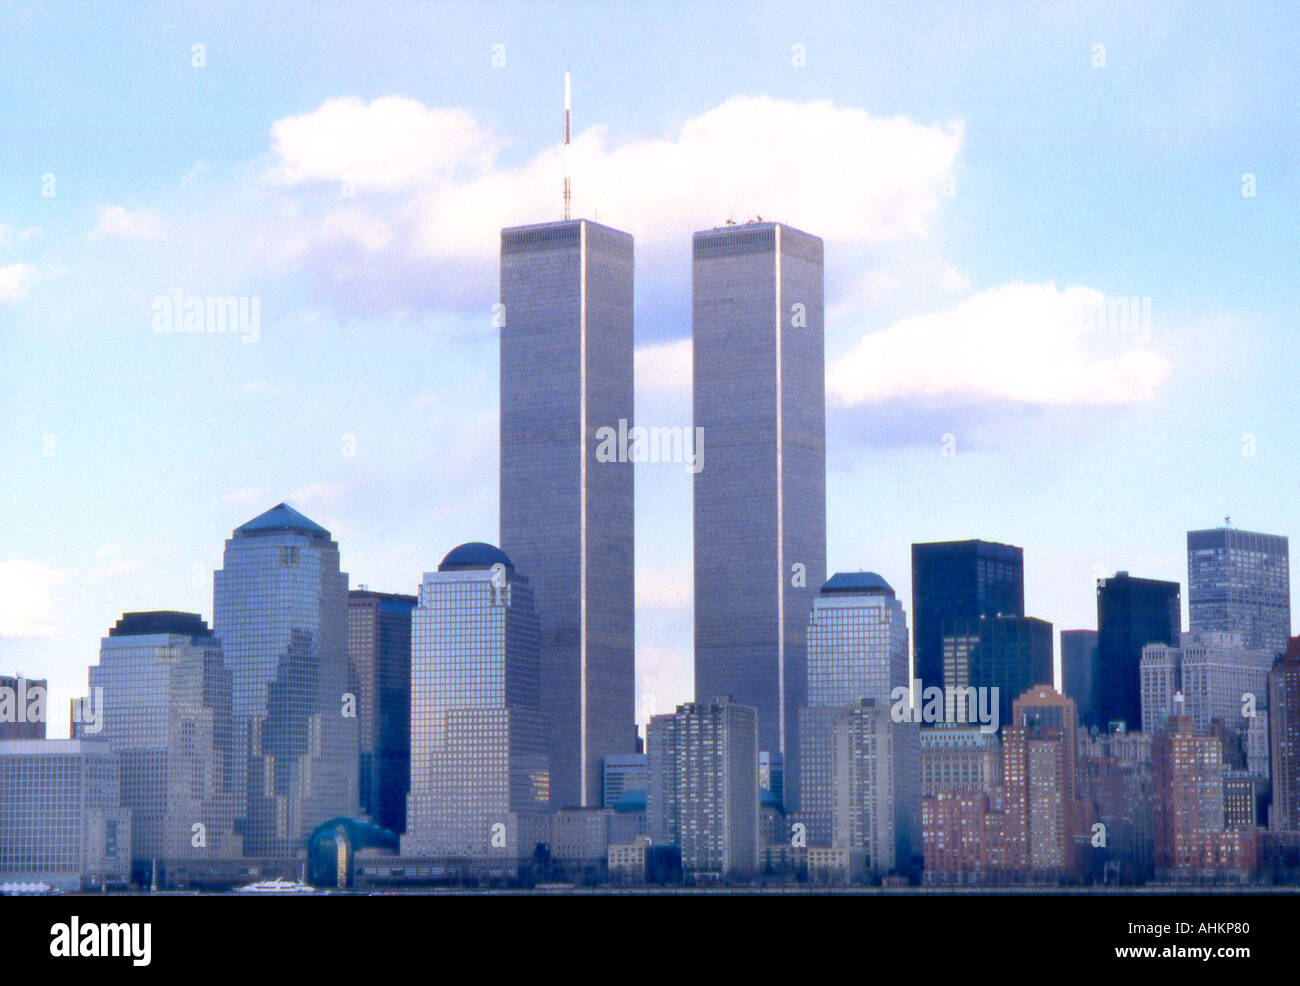 World Trade Center Twin Towers which no longer exist in New York City N Y USA - Stock Image